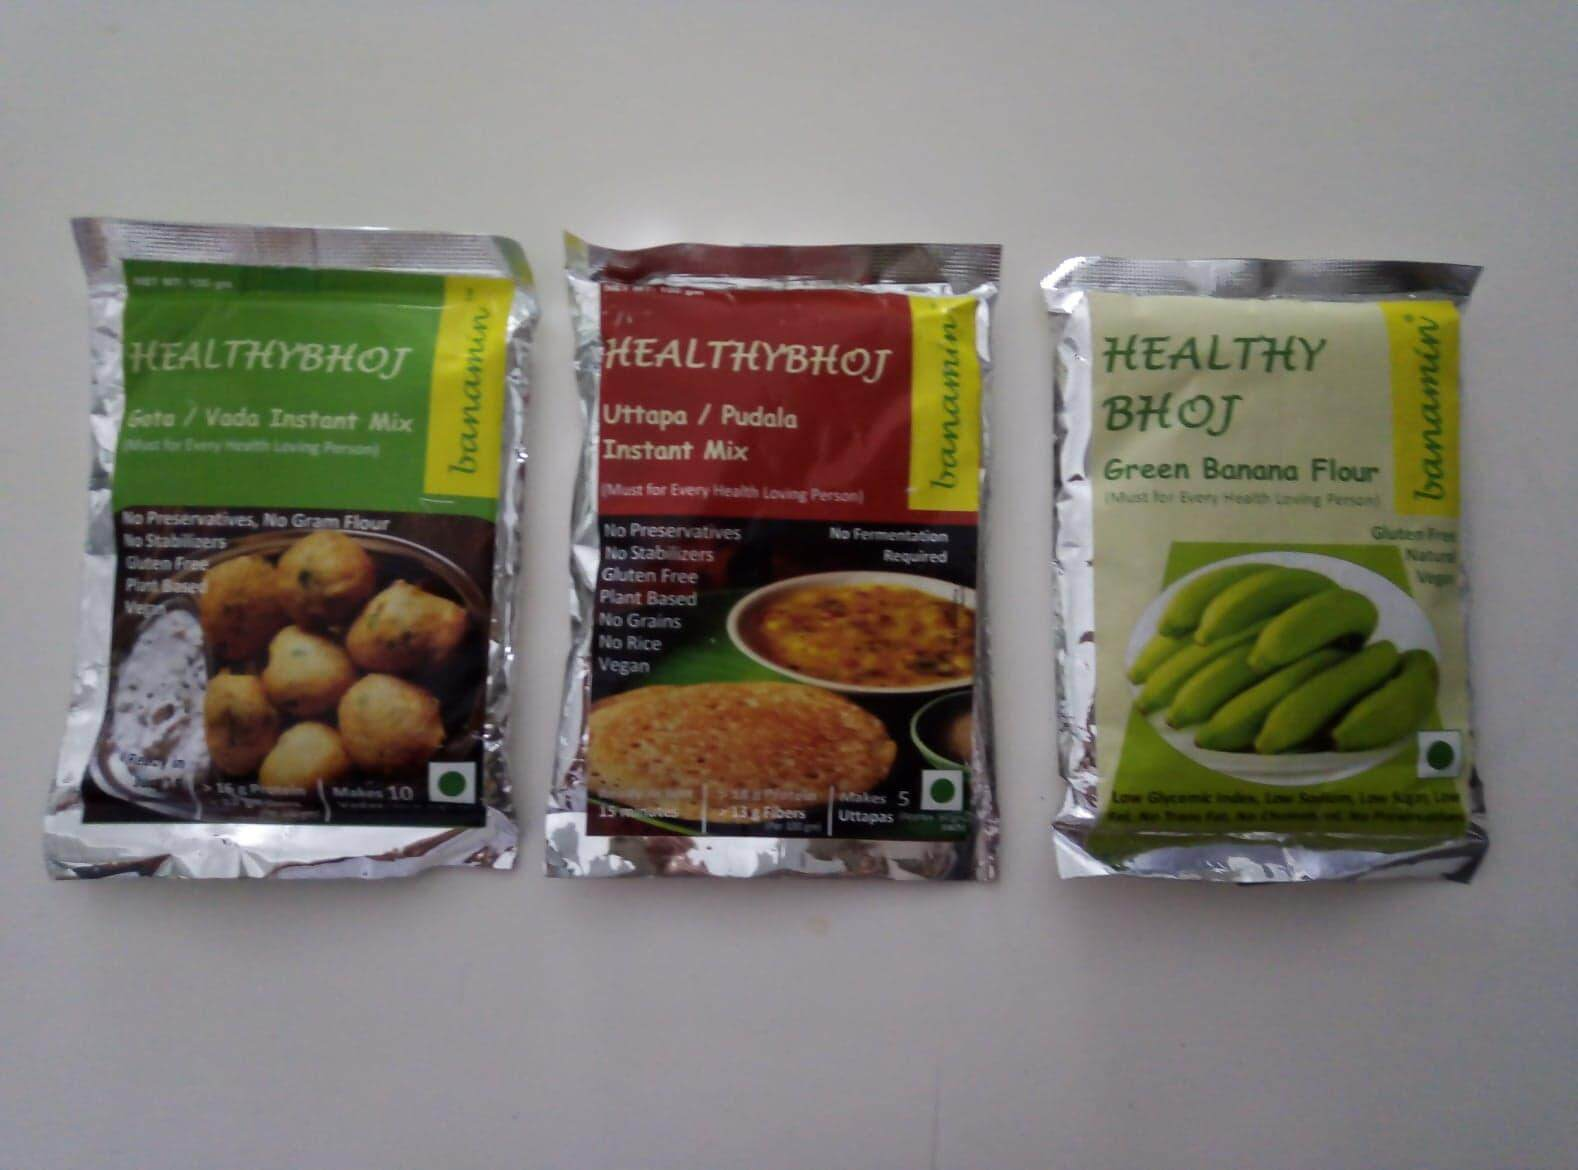 VEGAN GLUTEN FREE Vadai Instant Mix (100gms), Green Banana Flour (100gms) AND Uttapa Instant Mix (NO RICE) (100gms) - HALAL CERTIFIED